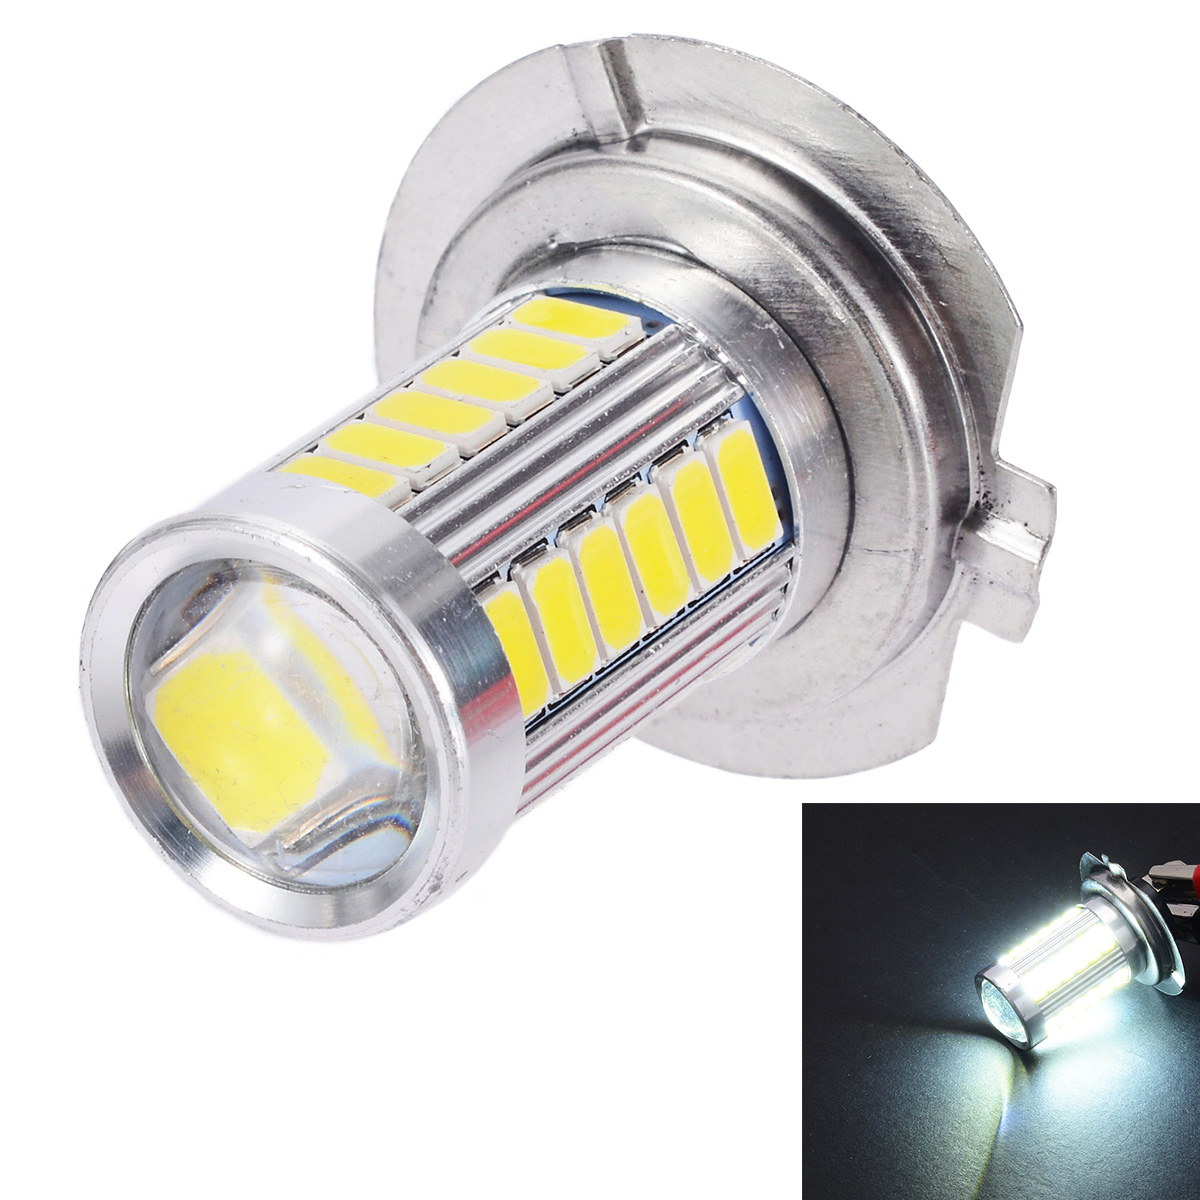 1 pcs White//Blue //seven color LED Bulbs Wind Powered Decorative Car Light xcz